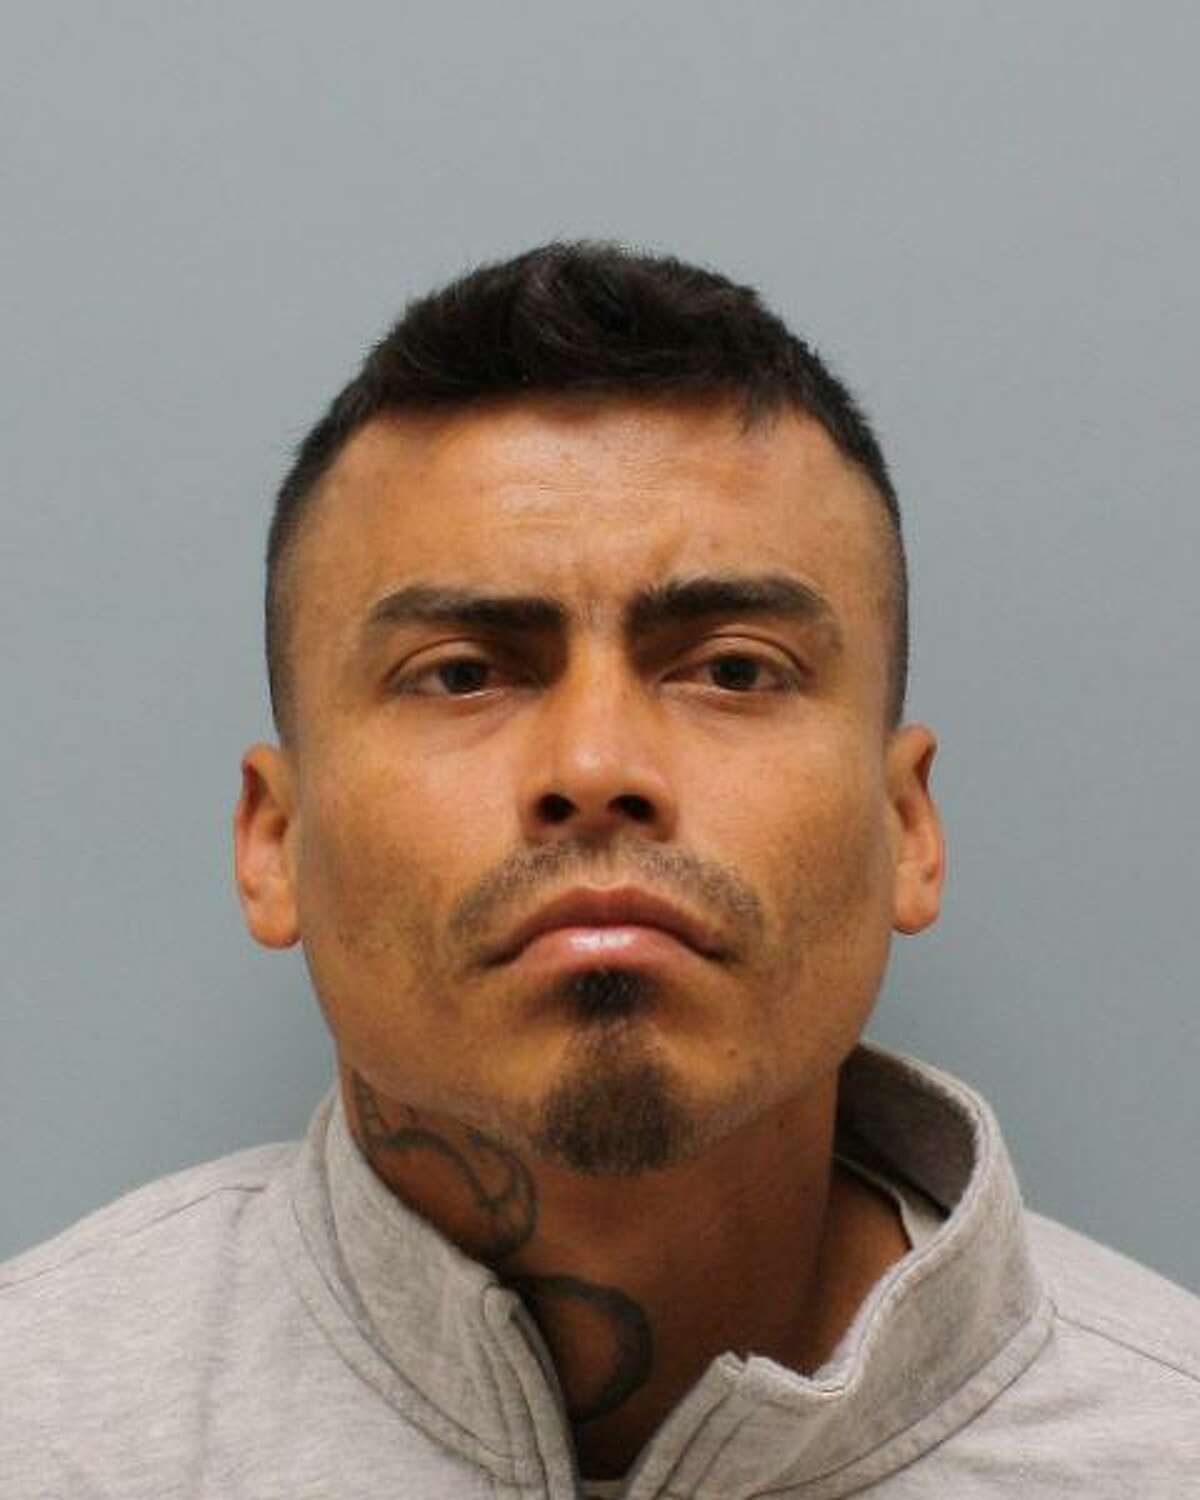 Moises Renteria Carranza, 30, was arrested Feb. 5, 2021, and charged with murder in the February 2020 death of Jon Hoffman.